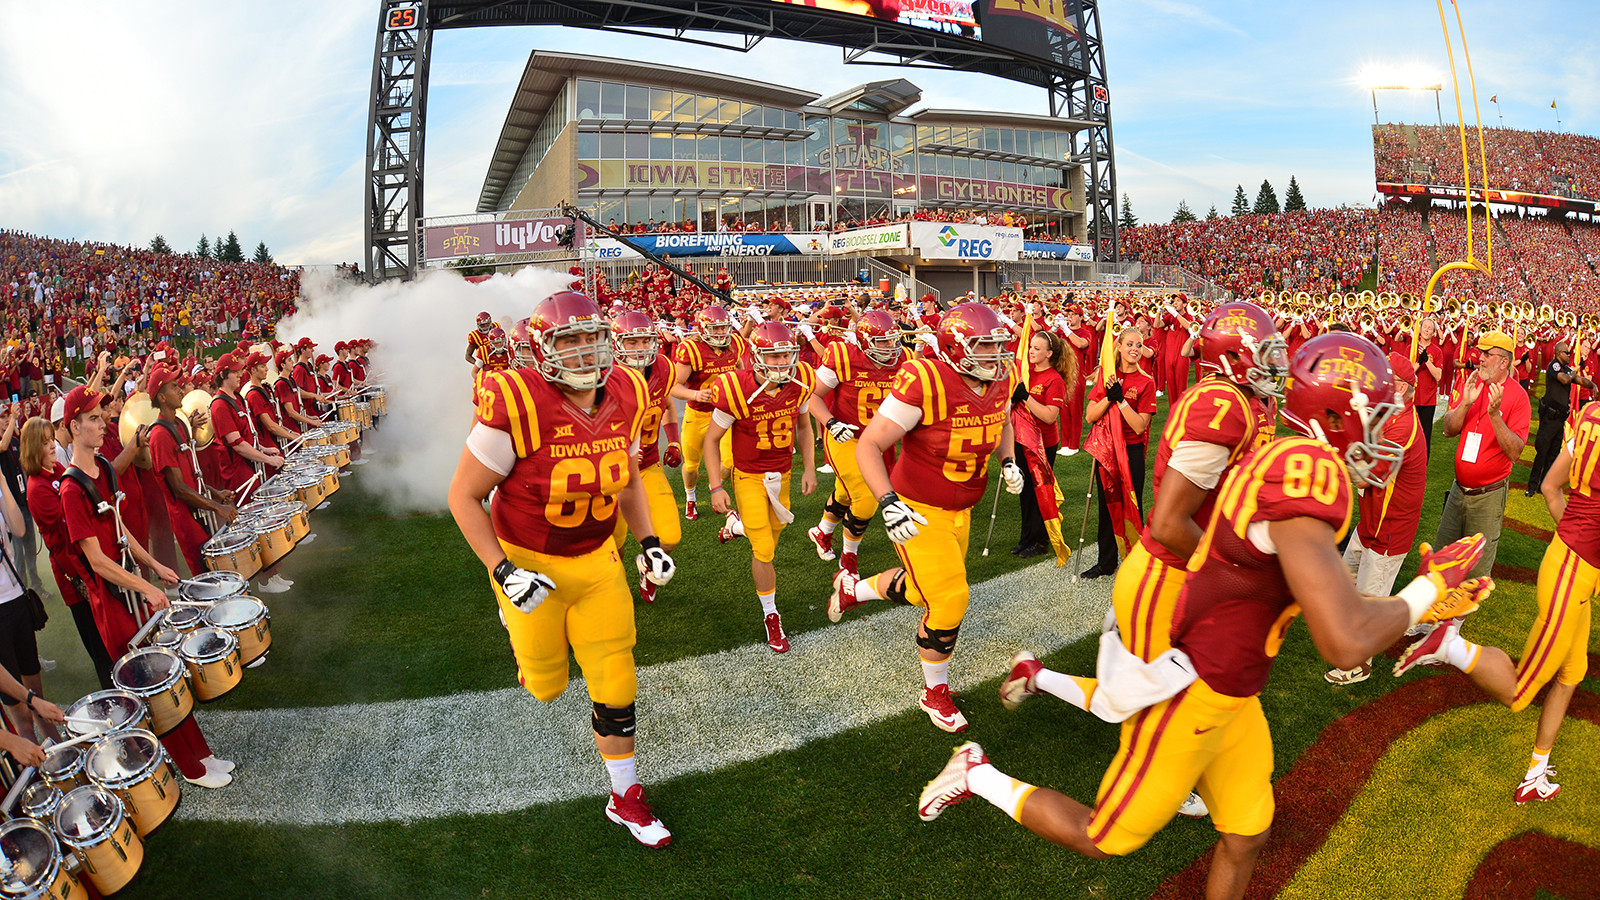 """Iowa State football team taking the field """"pictured here"""""""